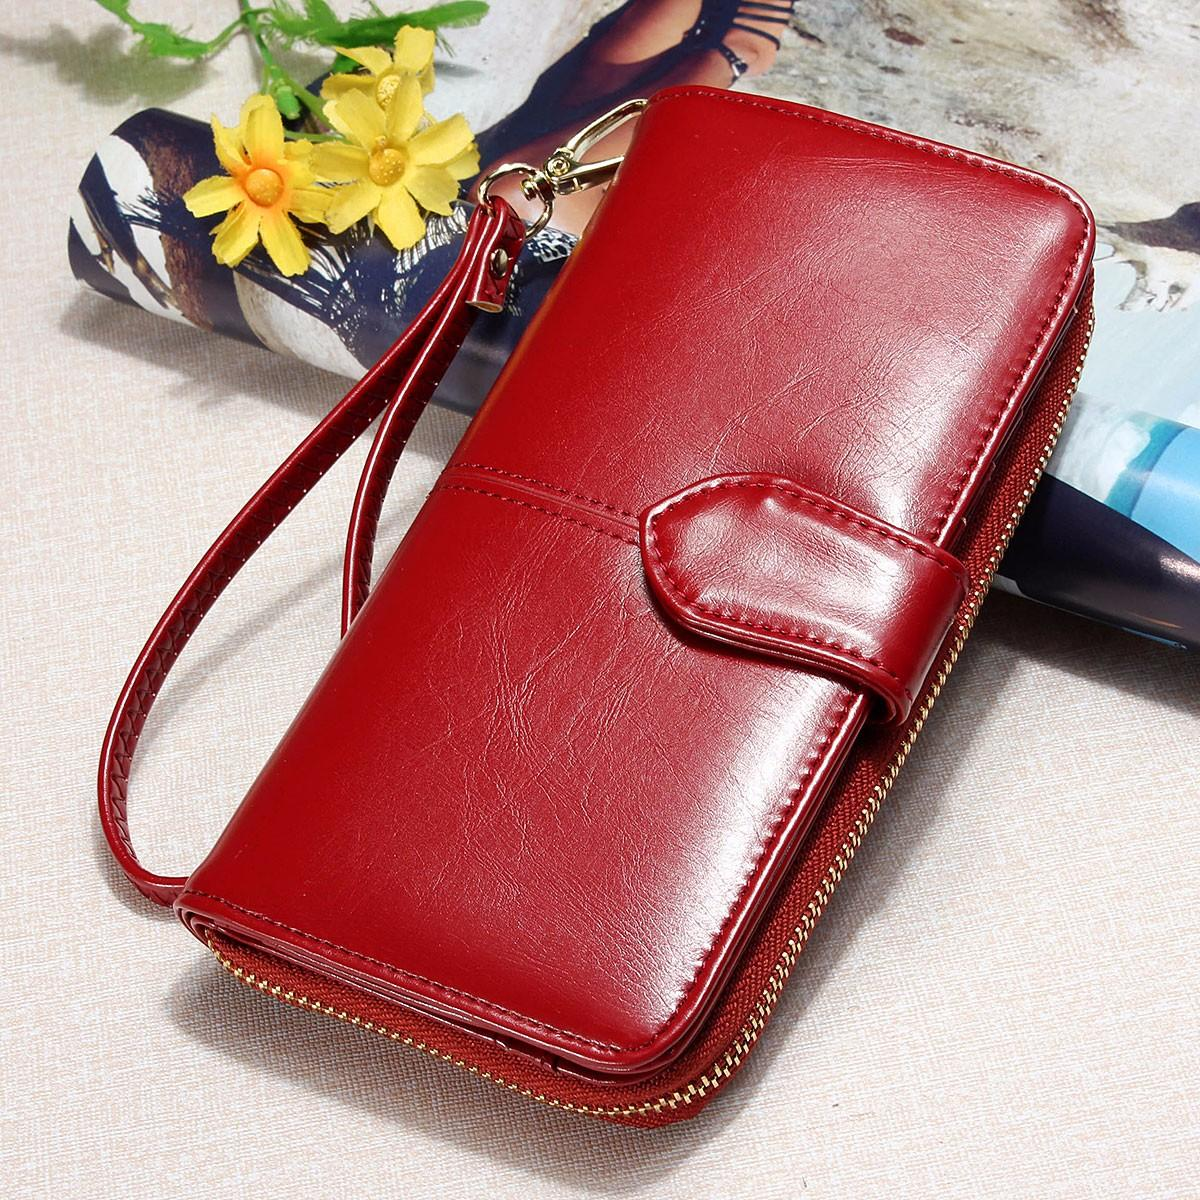 7c28d6803a8c Fashion Lady Women Leather Wallet Long Card Holder Case Clutch Purse Handbag  HOT Wine Red